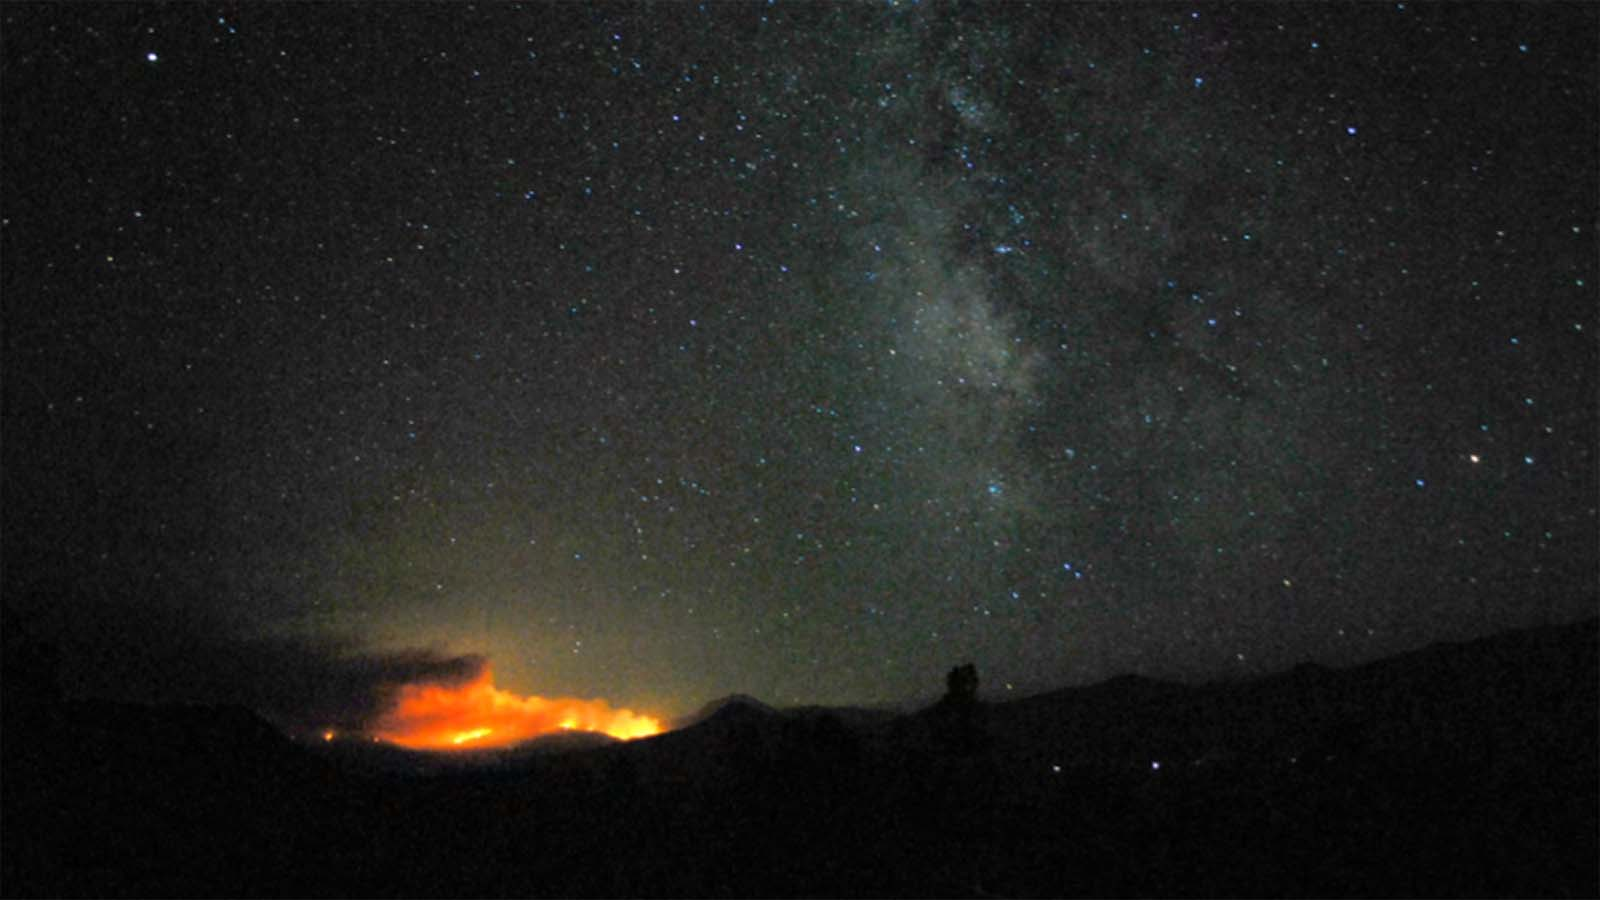 The Dixie Fire On The Horizon Beneath The Milky Way And A Starry Sky